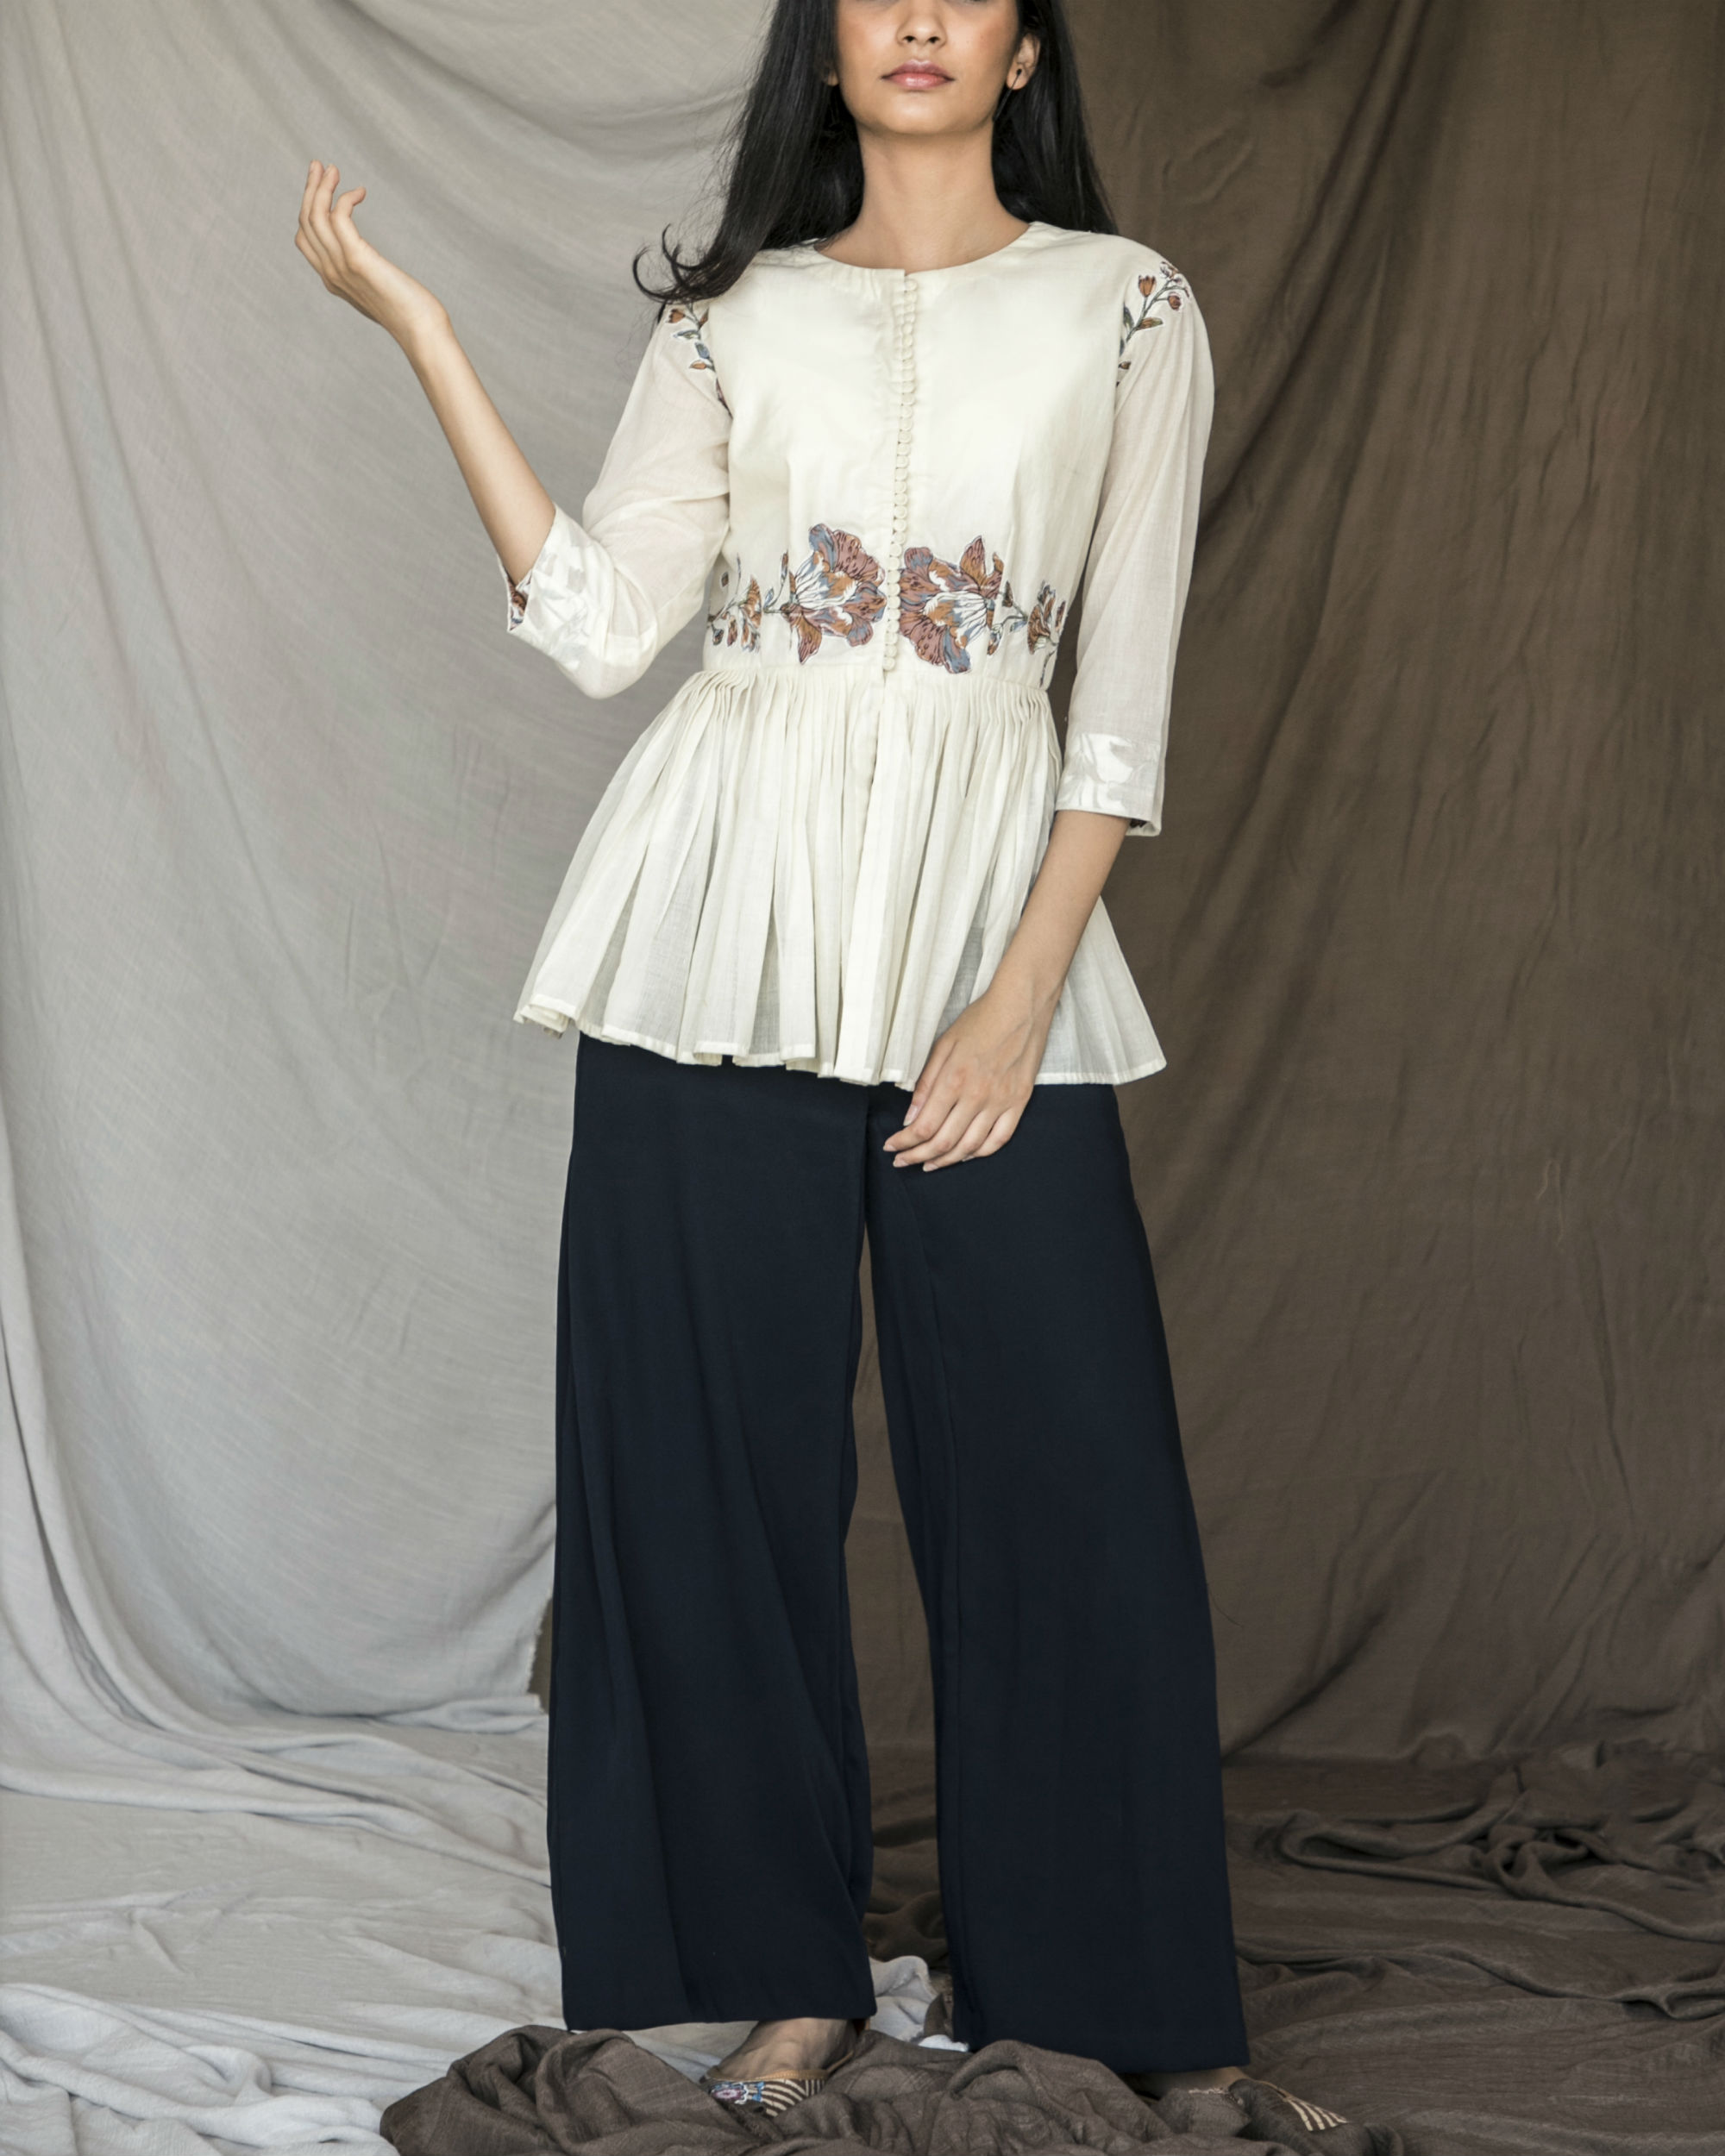 White pleated peplum top with patch work